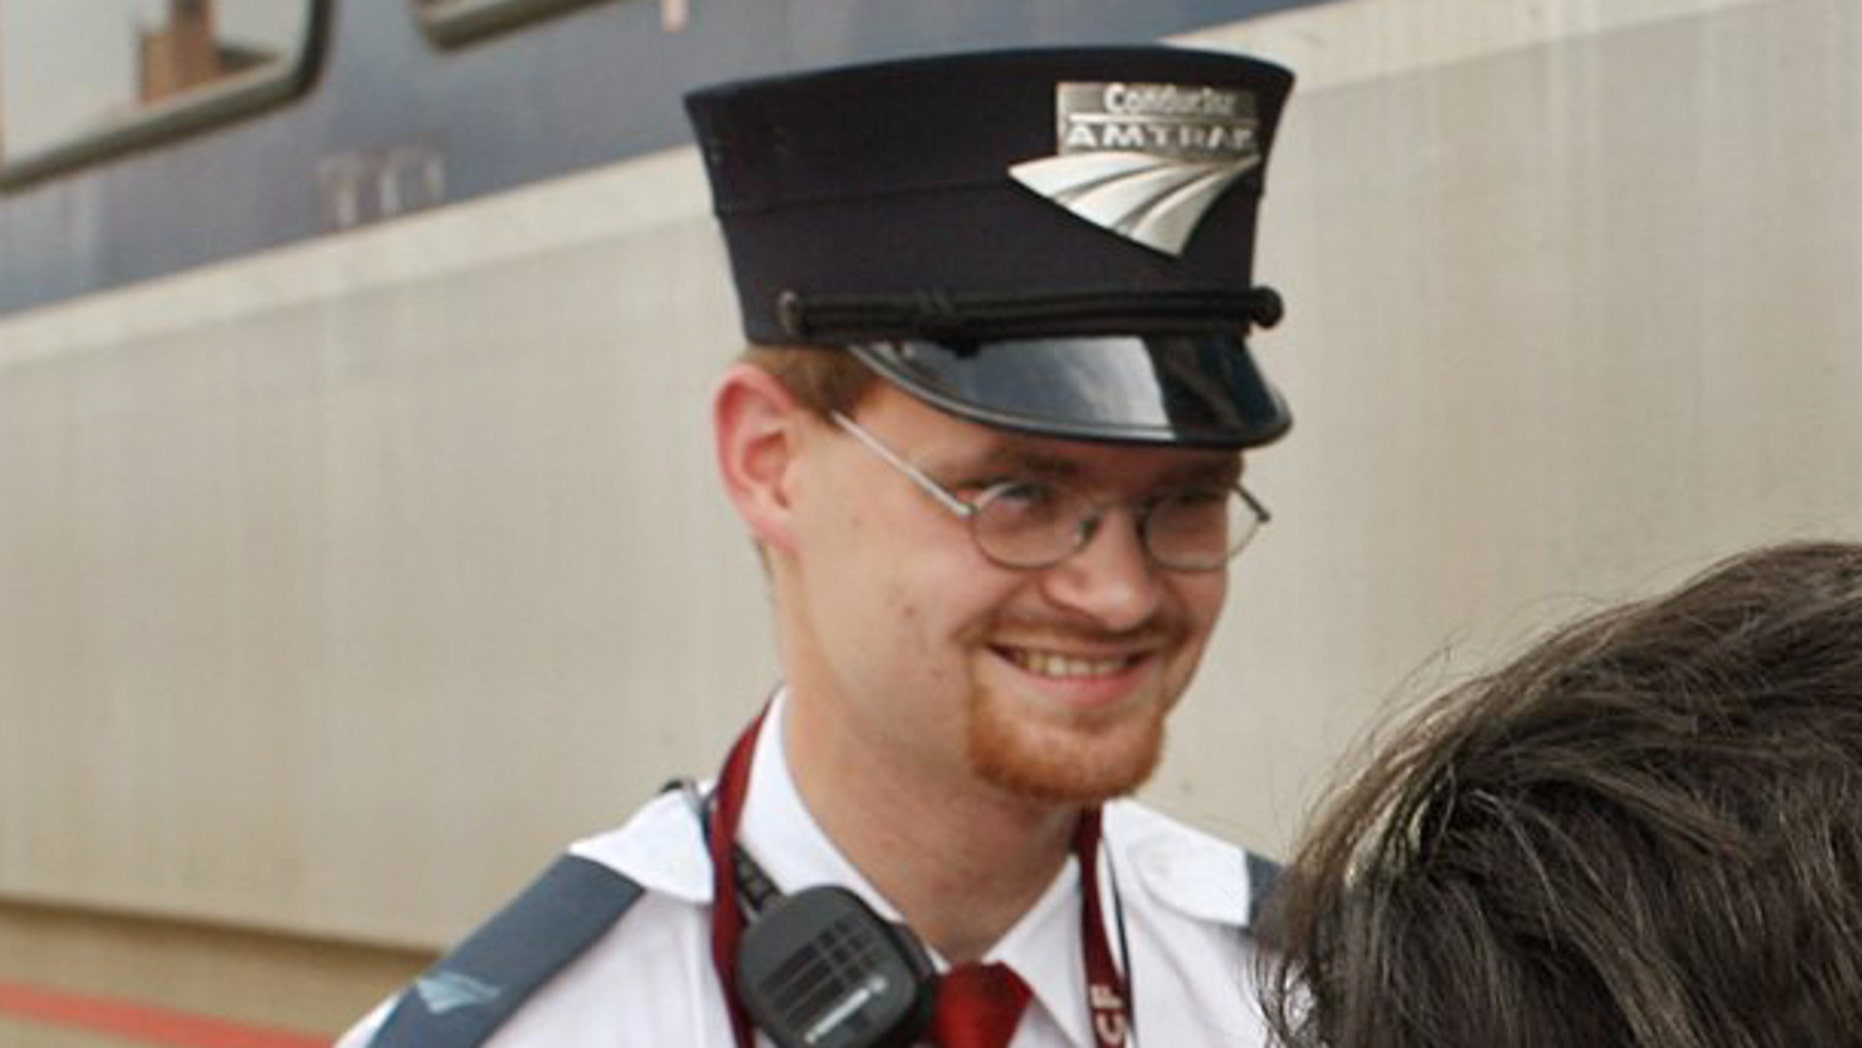 In this Aug. 21, 2007 photo, Amtrak assistant conductor, Brandon Bostian stands by as passengers board a train.